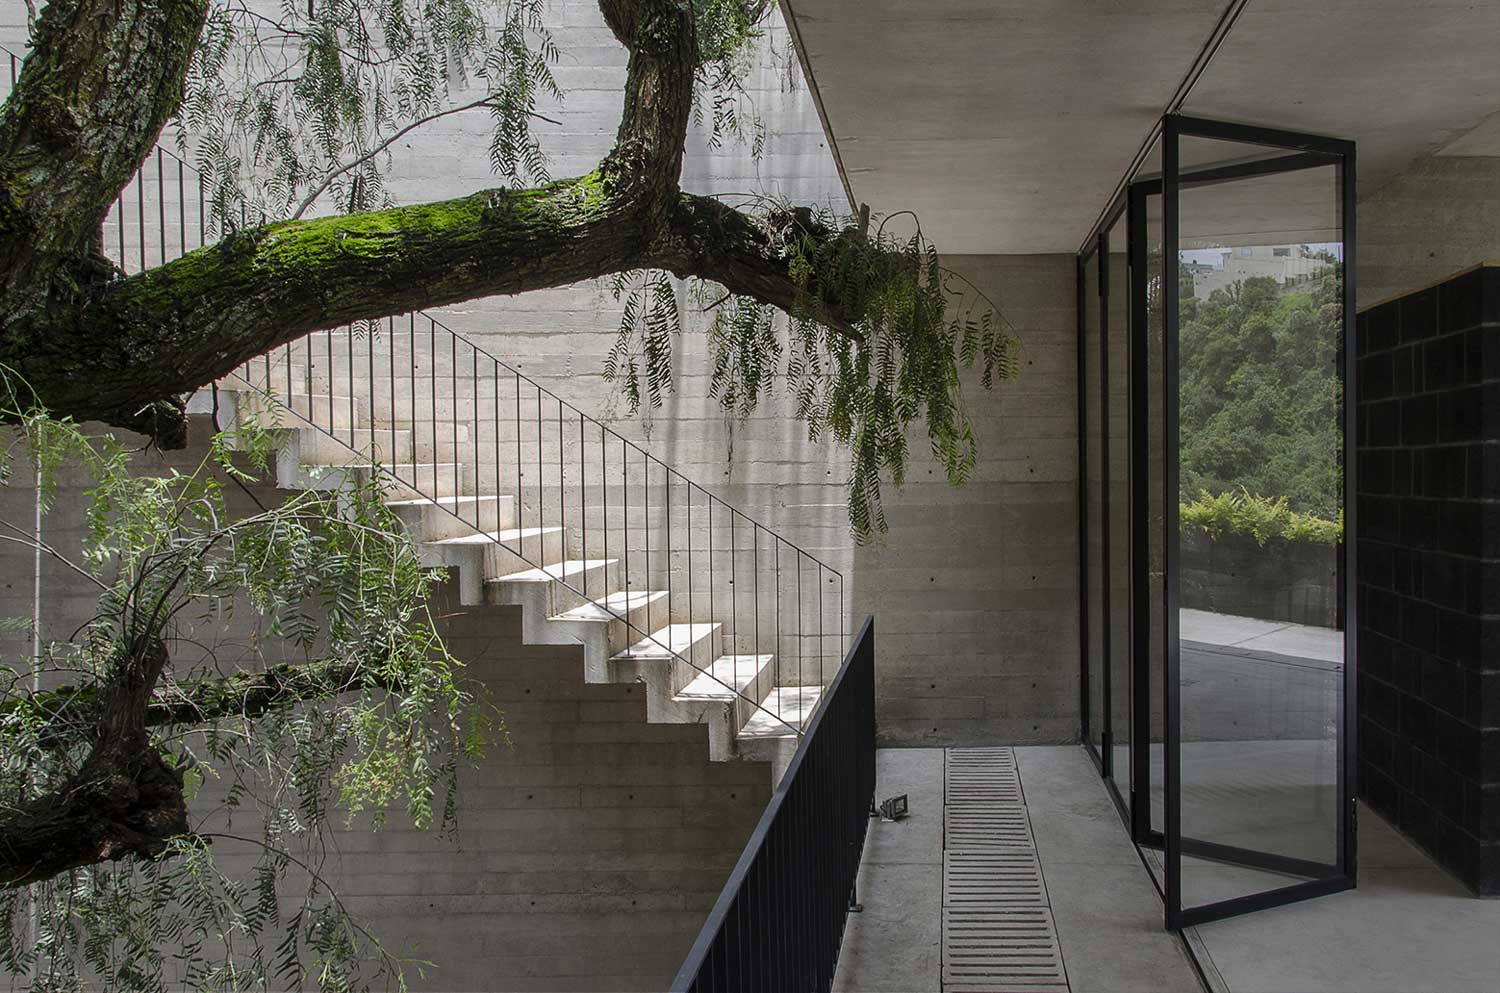 Concrete Compounds Courtyards : Concrete courtyard house mexico city by arch yellowtrace